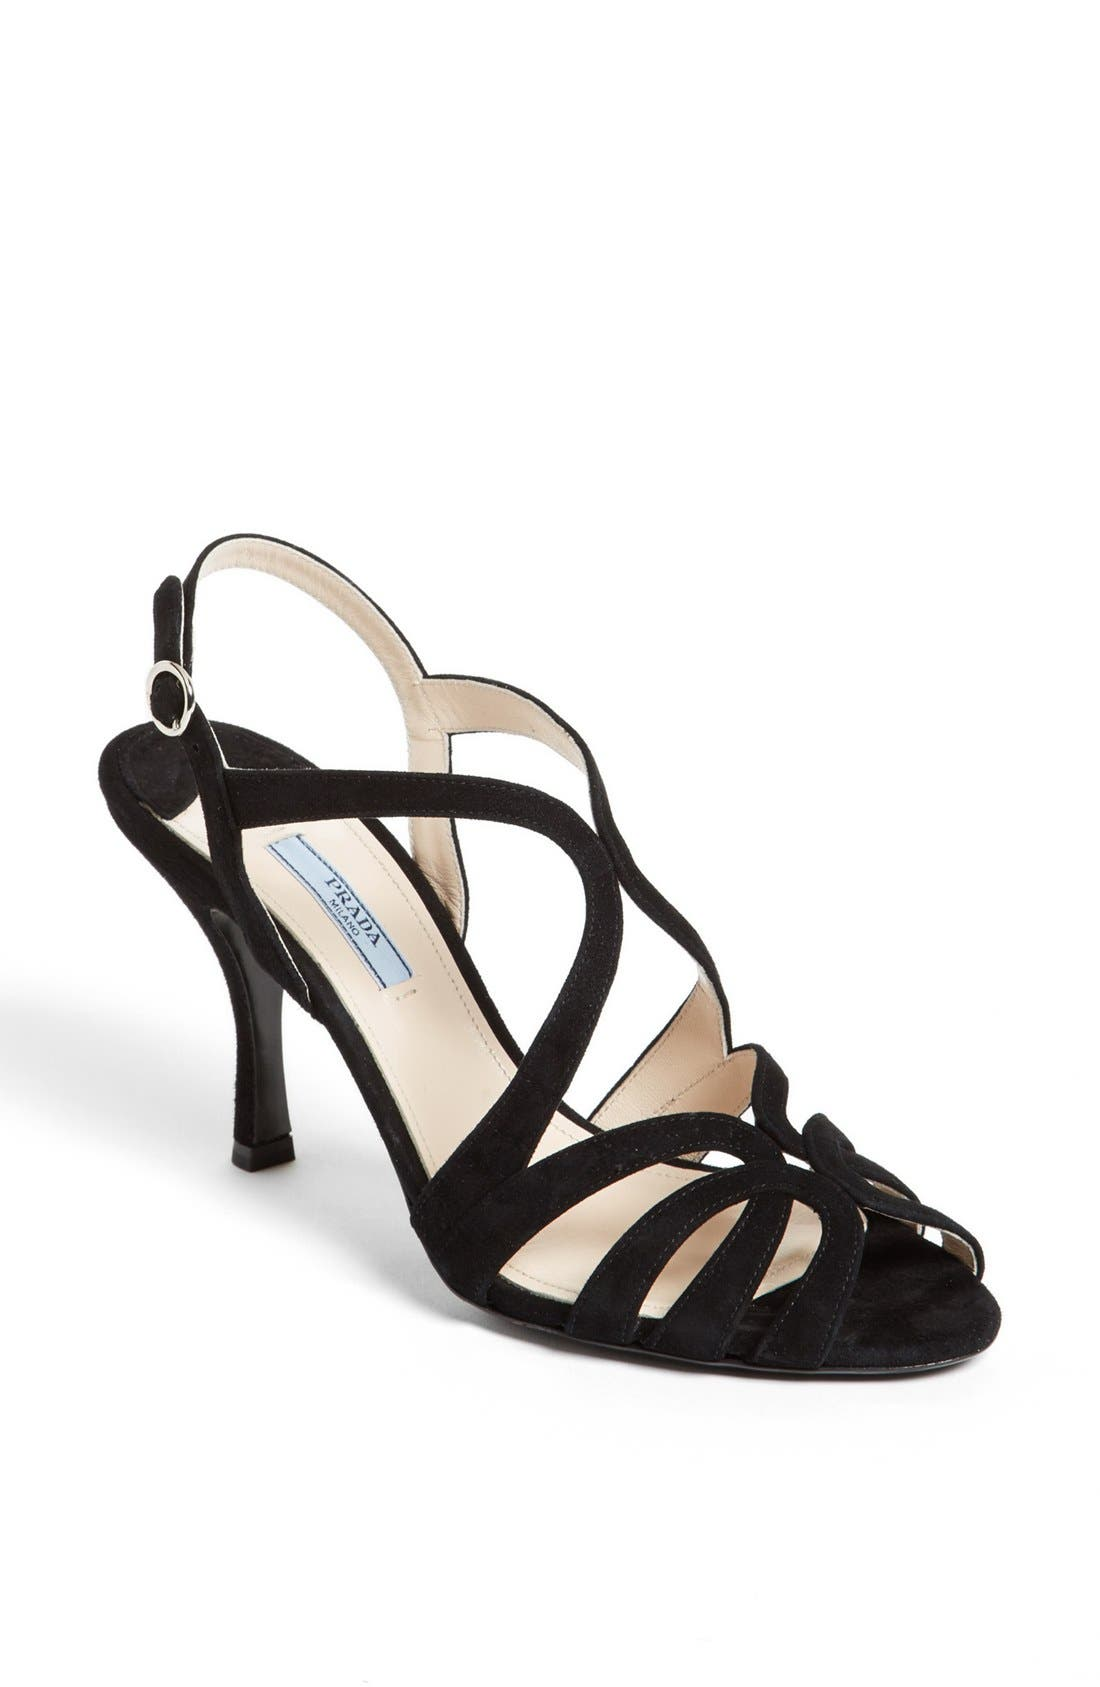 Alternate Image 1 Selected - Prada Strappy Sandal